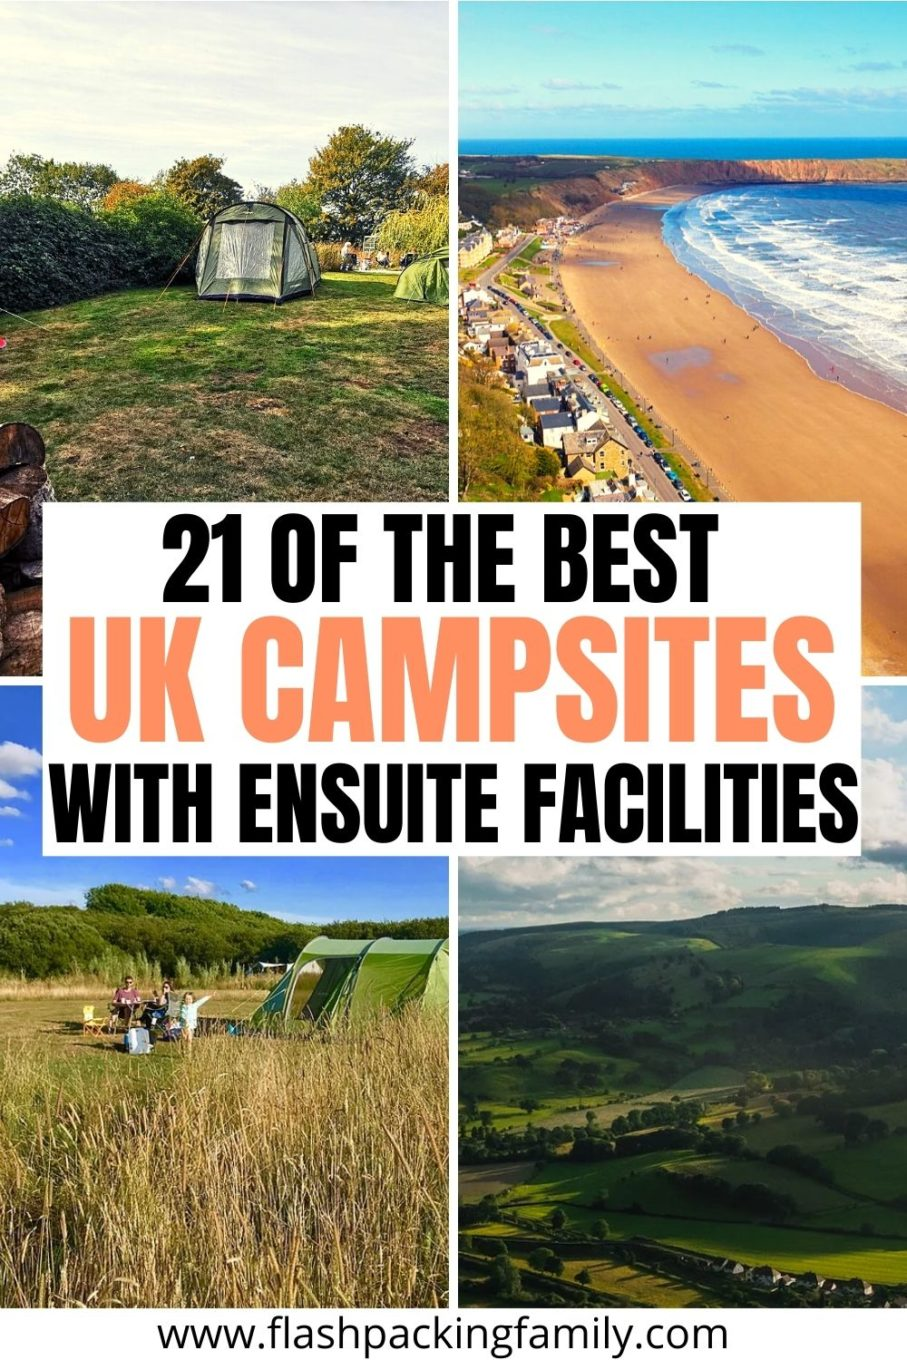 21 of the Best UK Campsites with Ensuite Facilities.